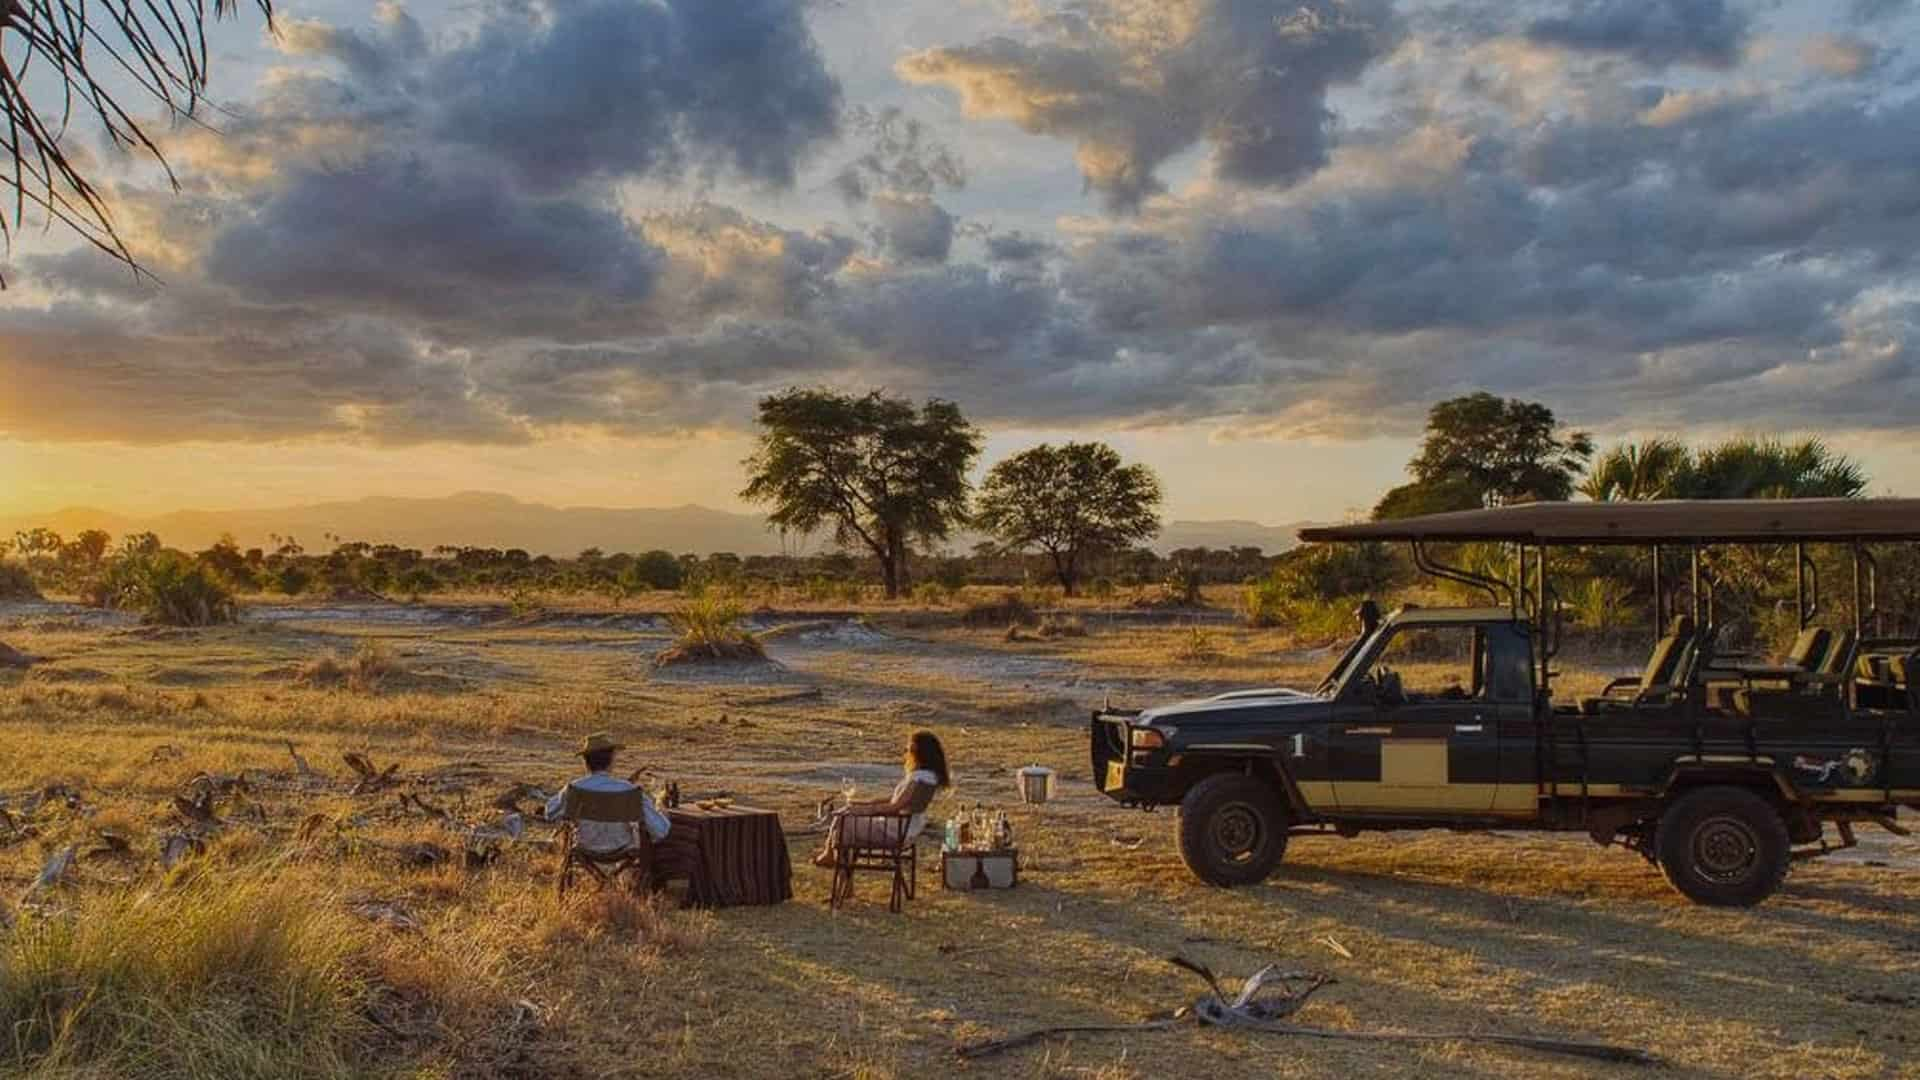 Sunset dinner in the Kenyan bush